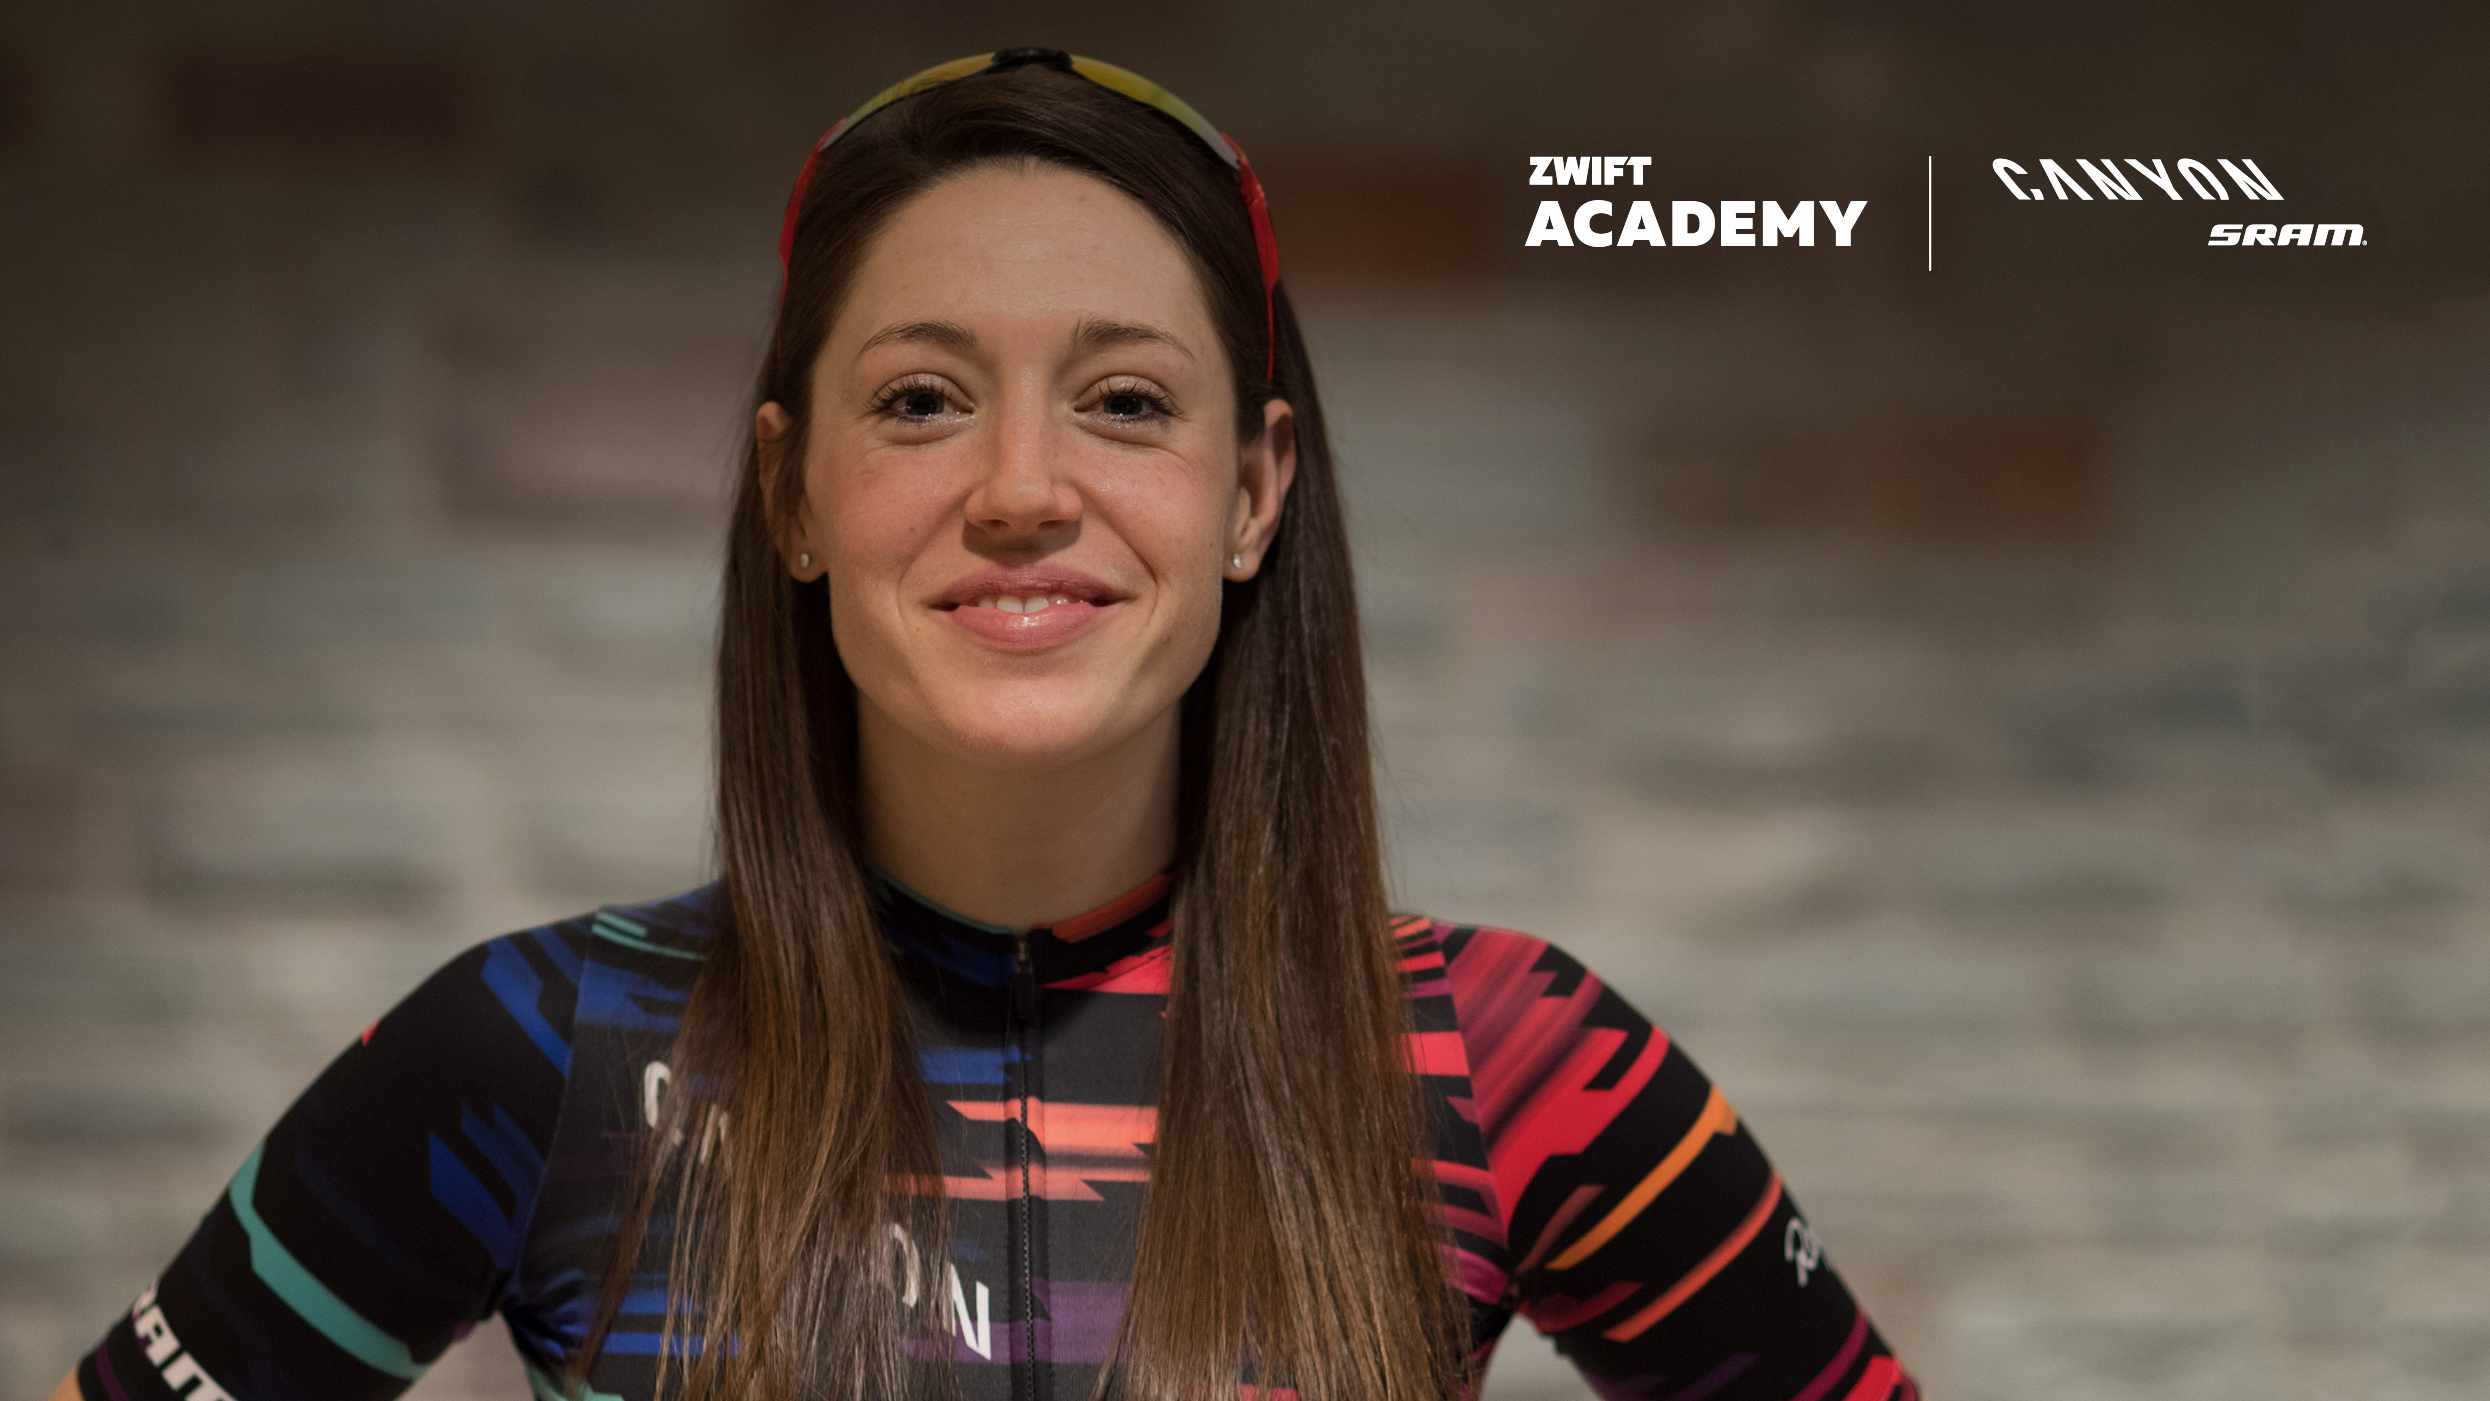 Tanja Erath won the 2017 Zwift Academy and a contract with pro cycling team Canyon//SRAM